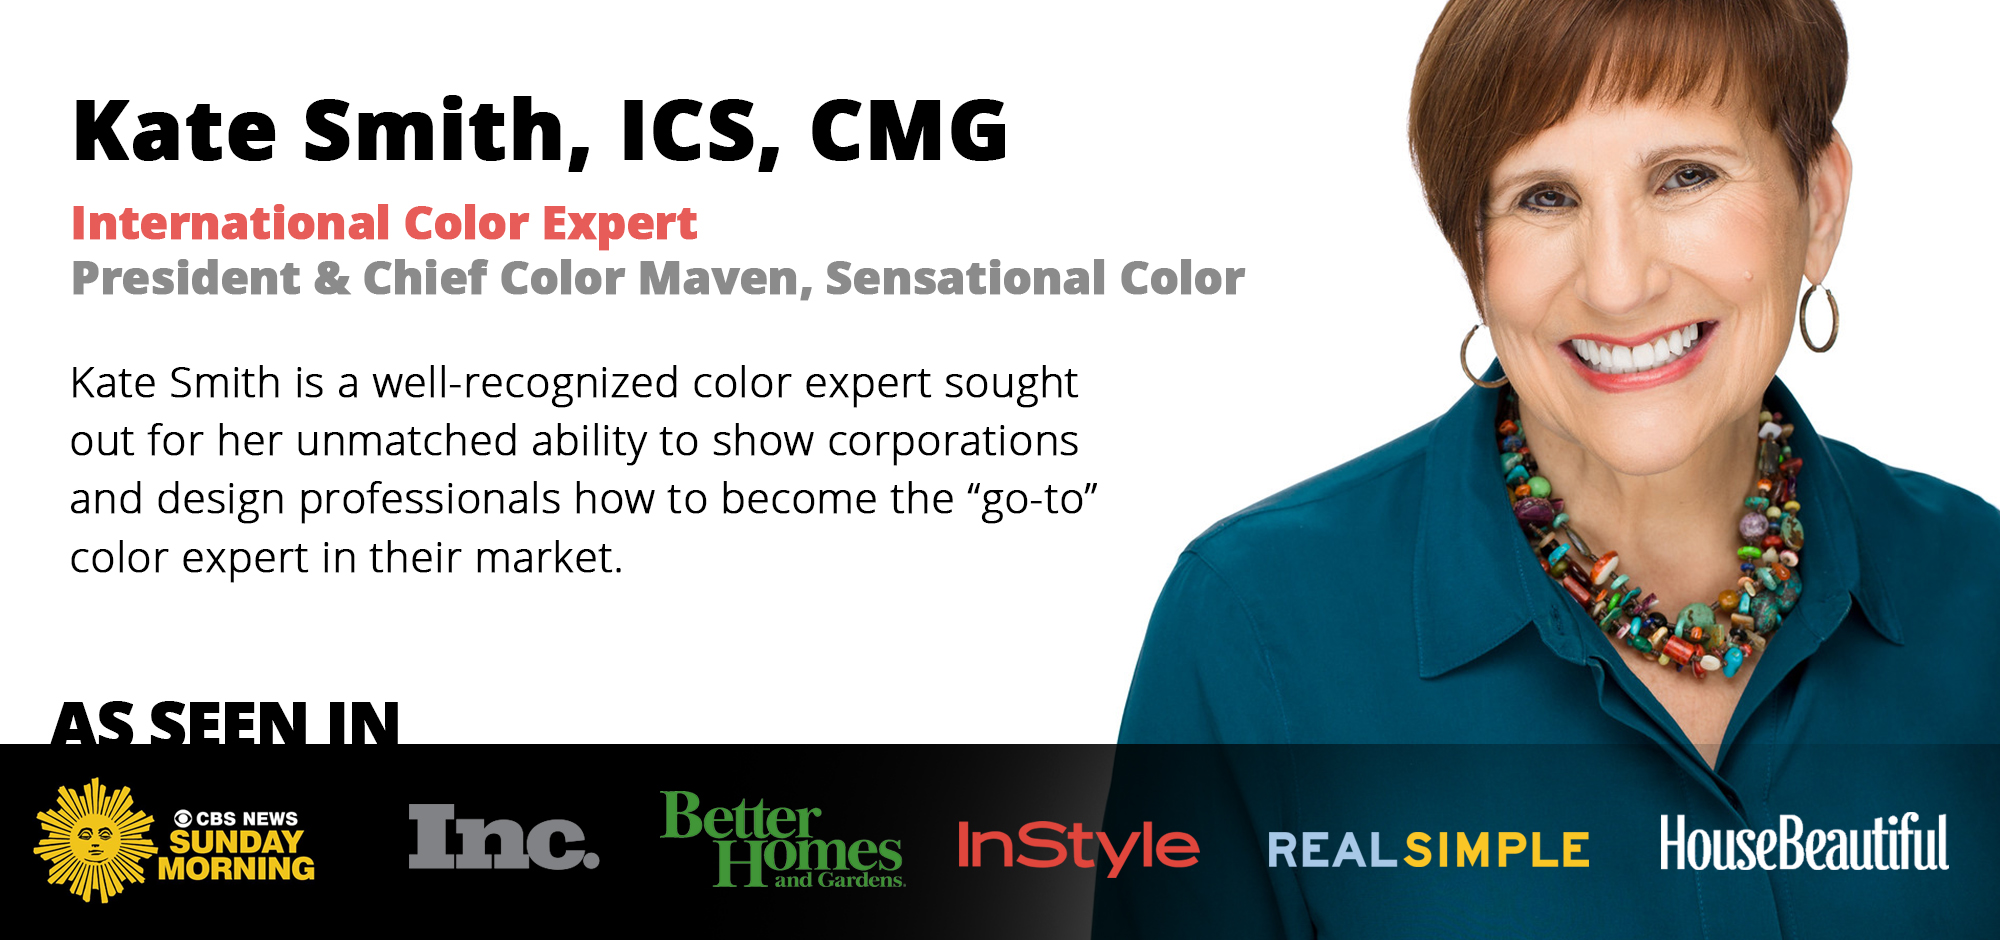 About Color Expert Kate Smith